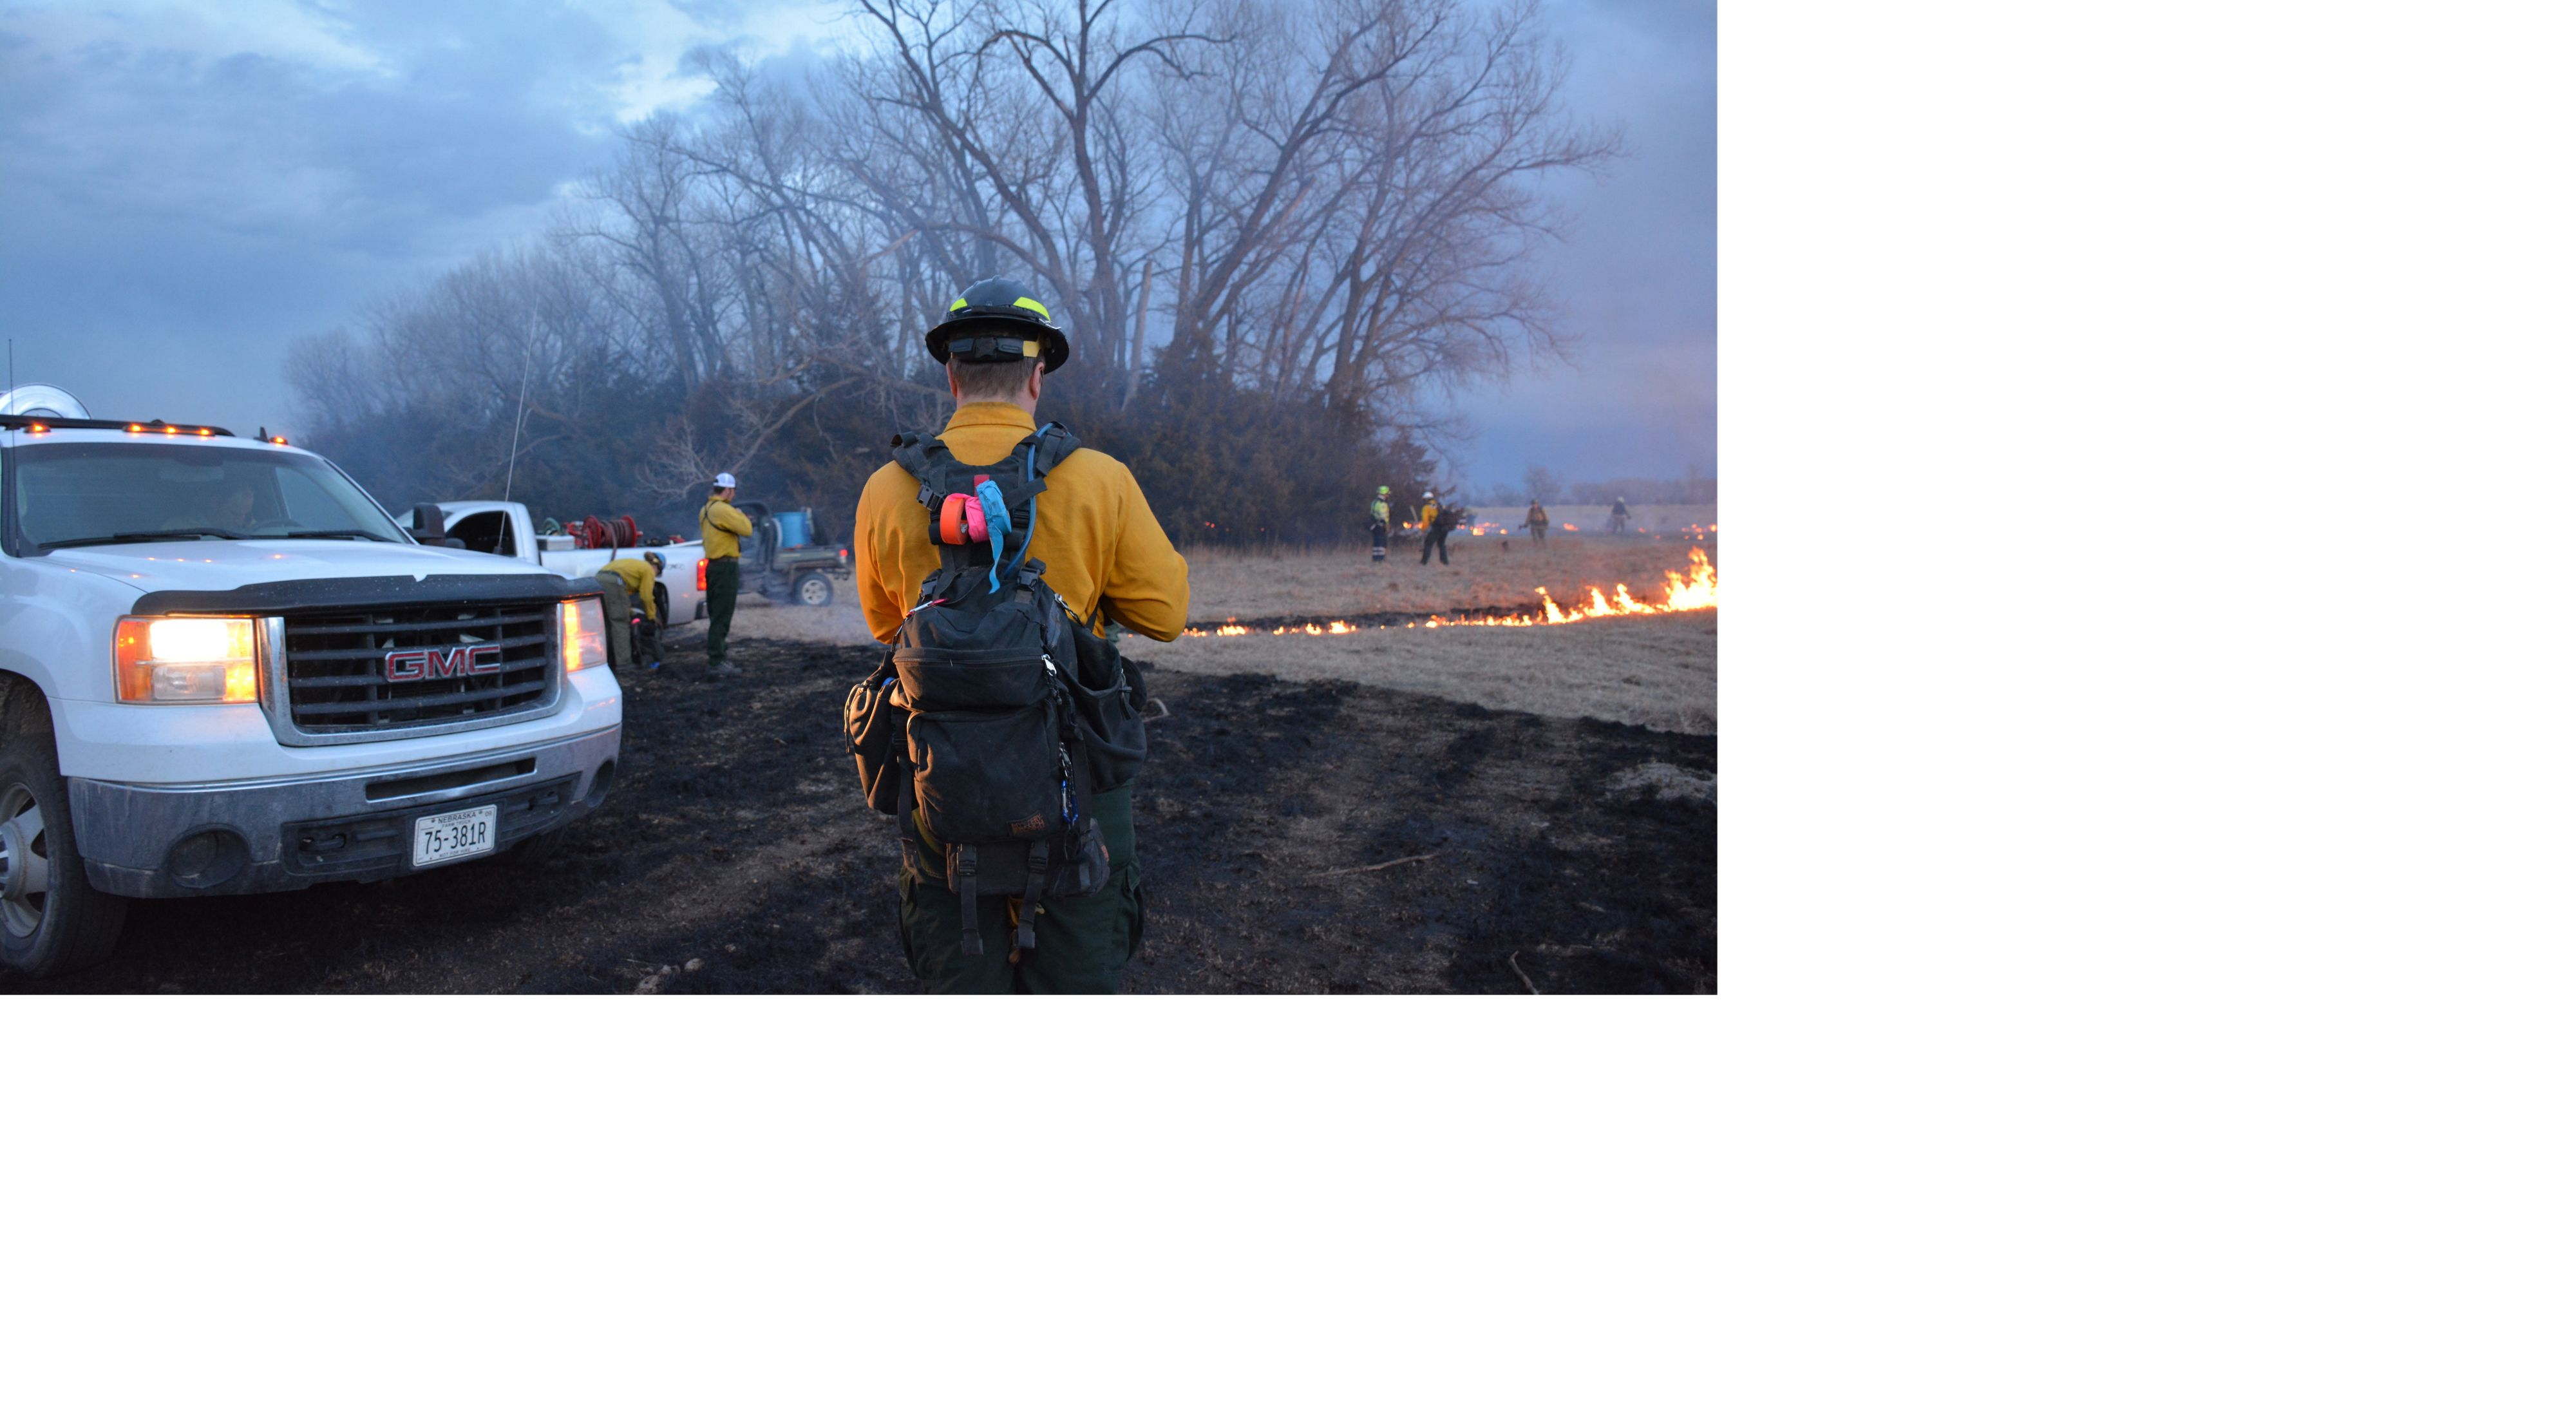 Annual Fire Training Exchange at the Niobrara Valley Preserve in Nebraska.